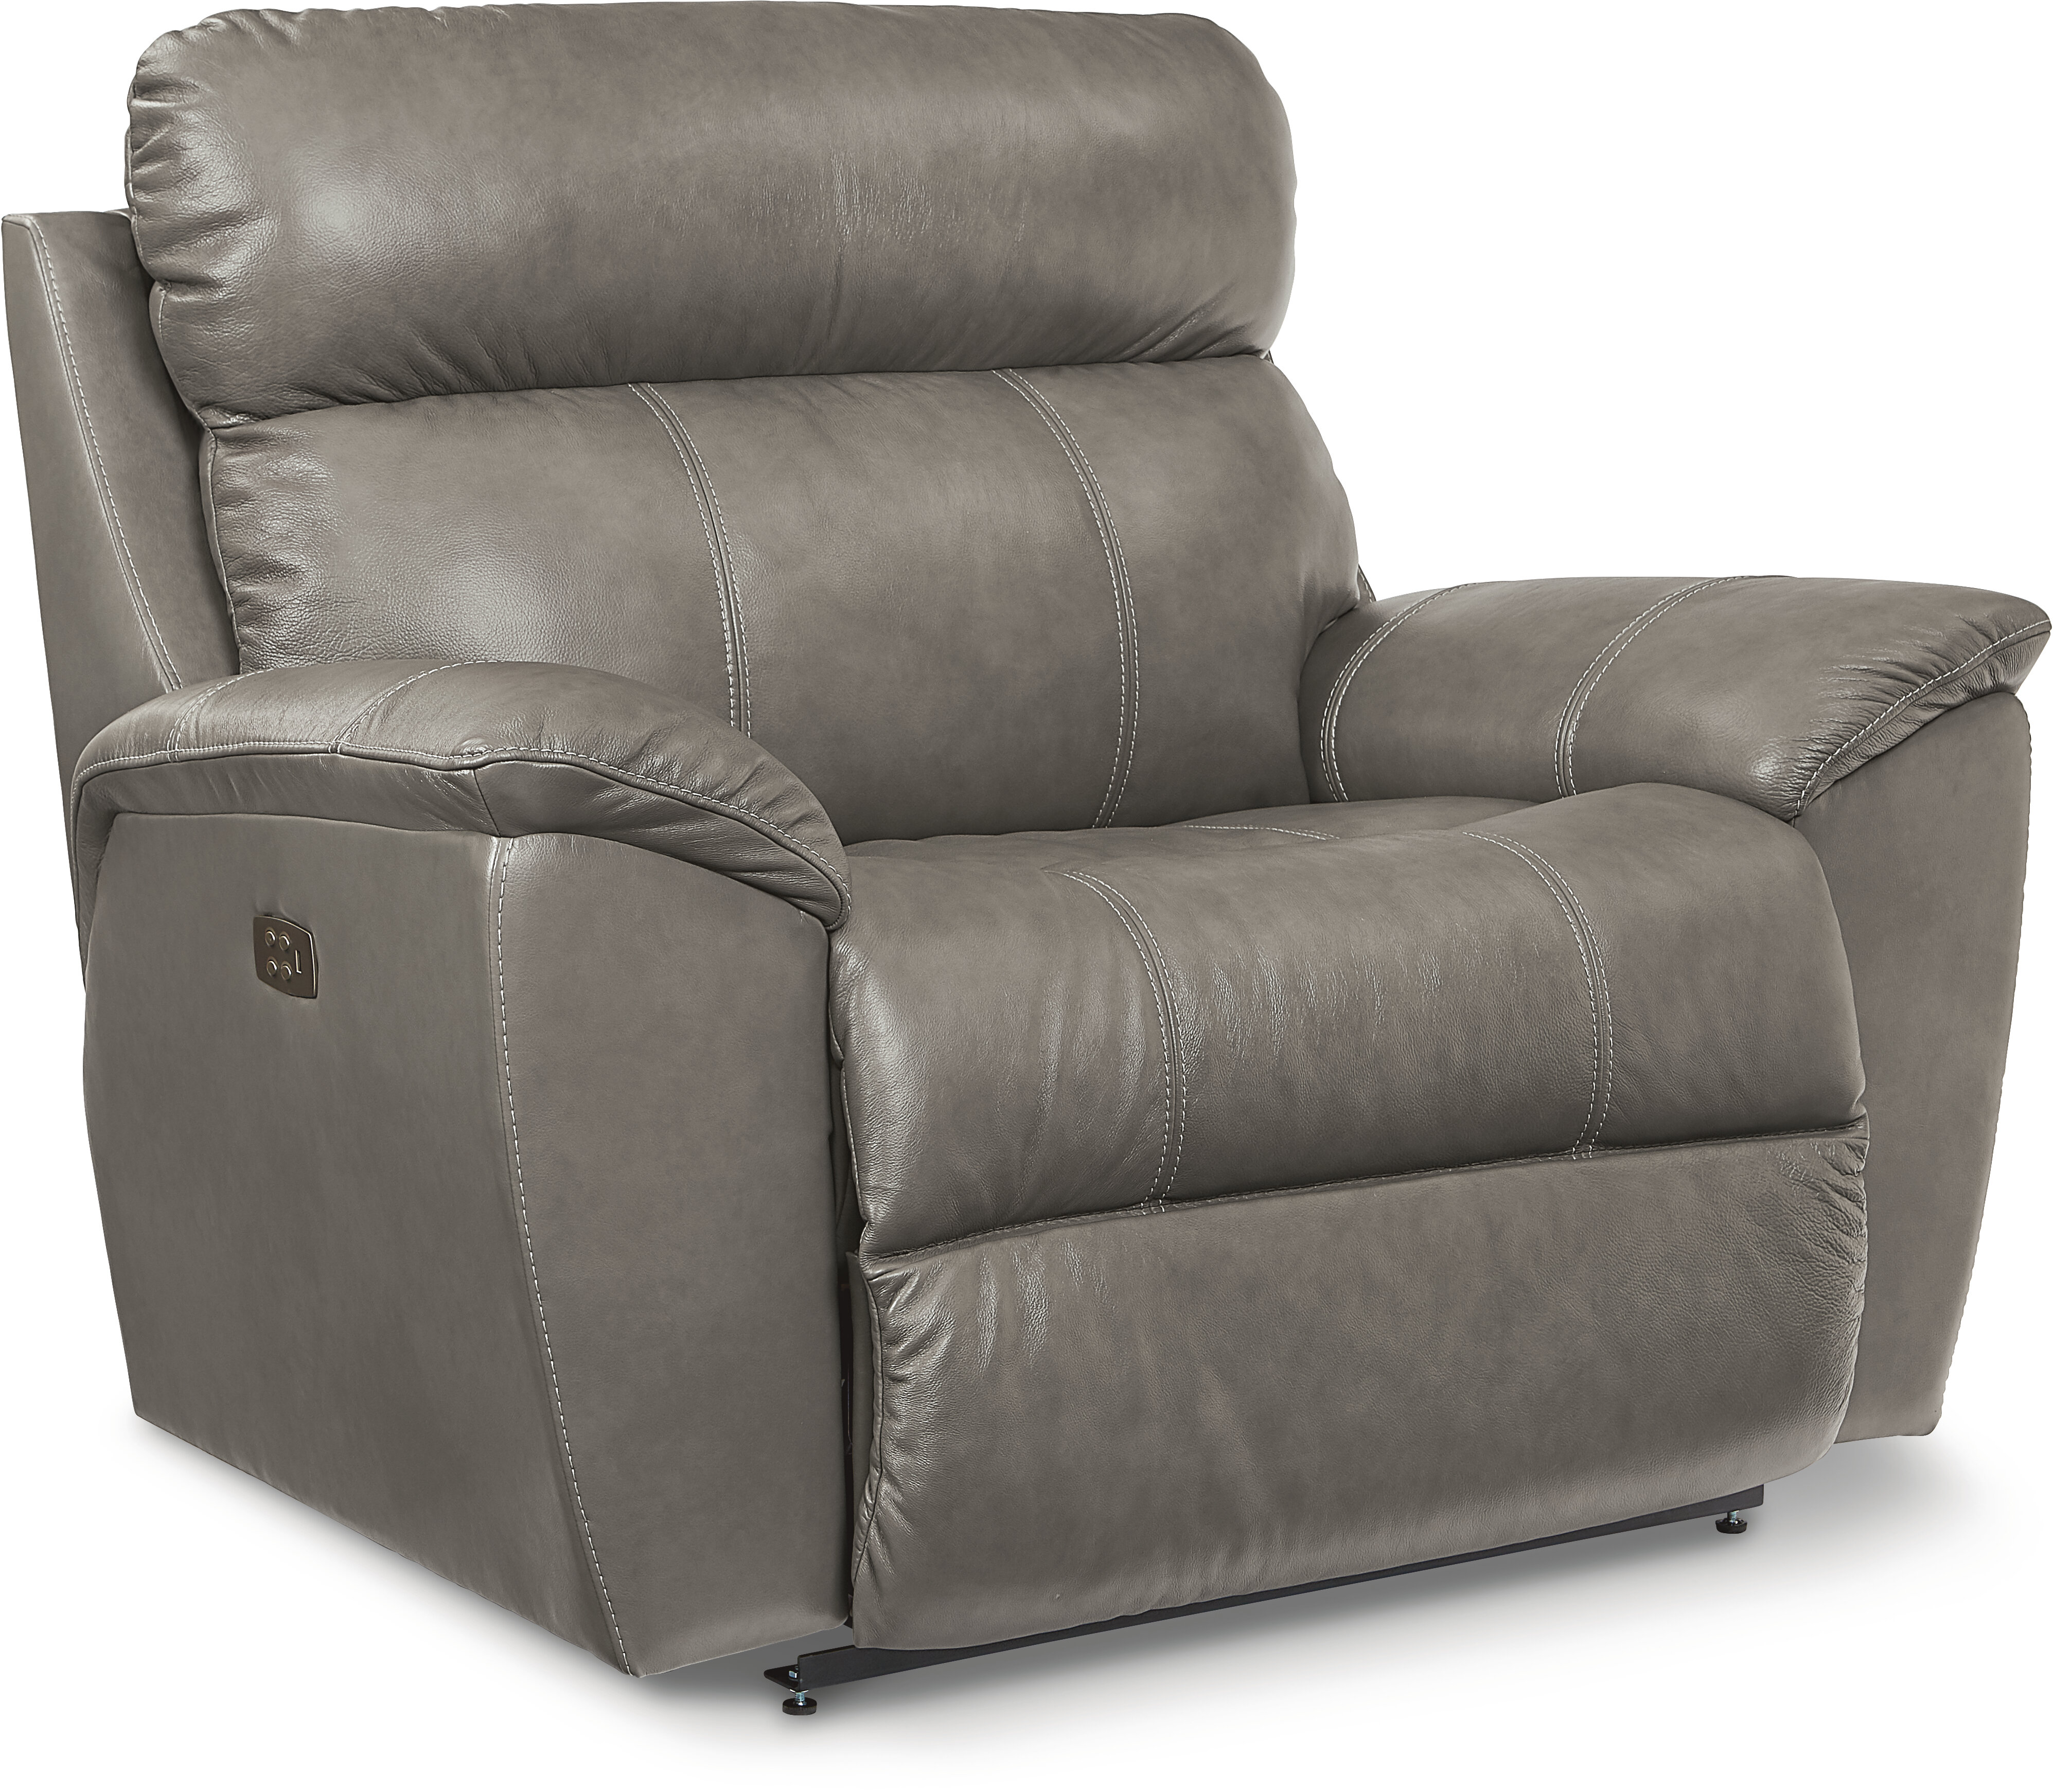 Superb Roman Leather Power Recliner Caraccident5 Cool Chair Designs And Ideas Caraccident5Info